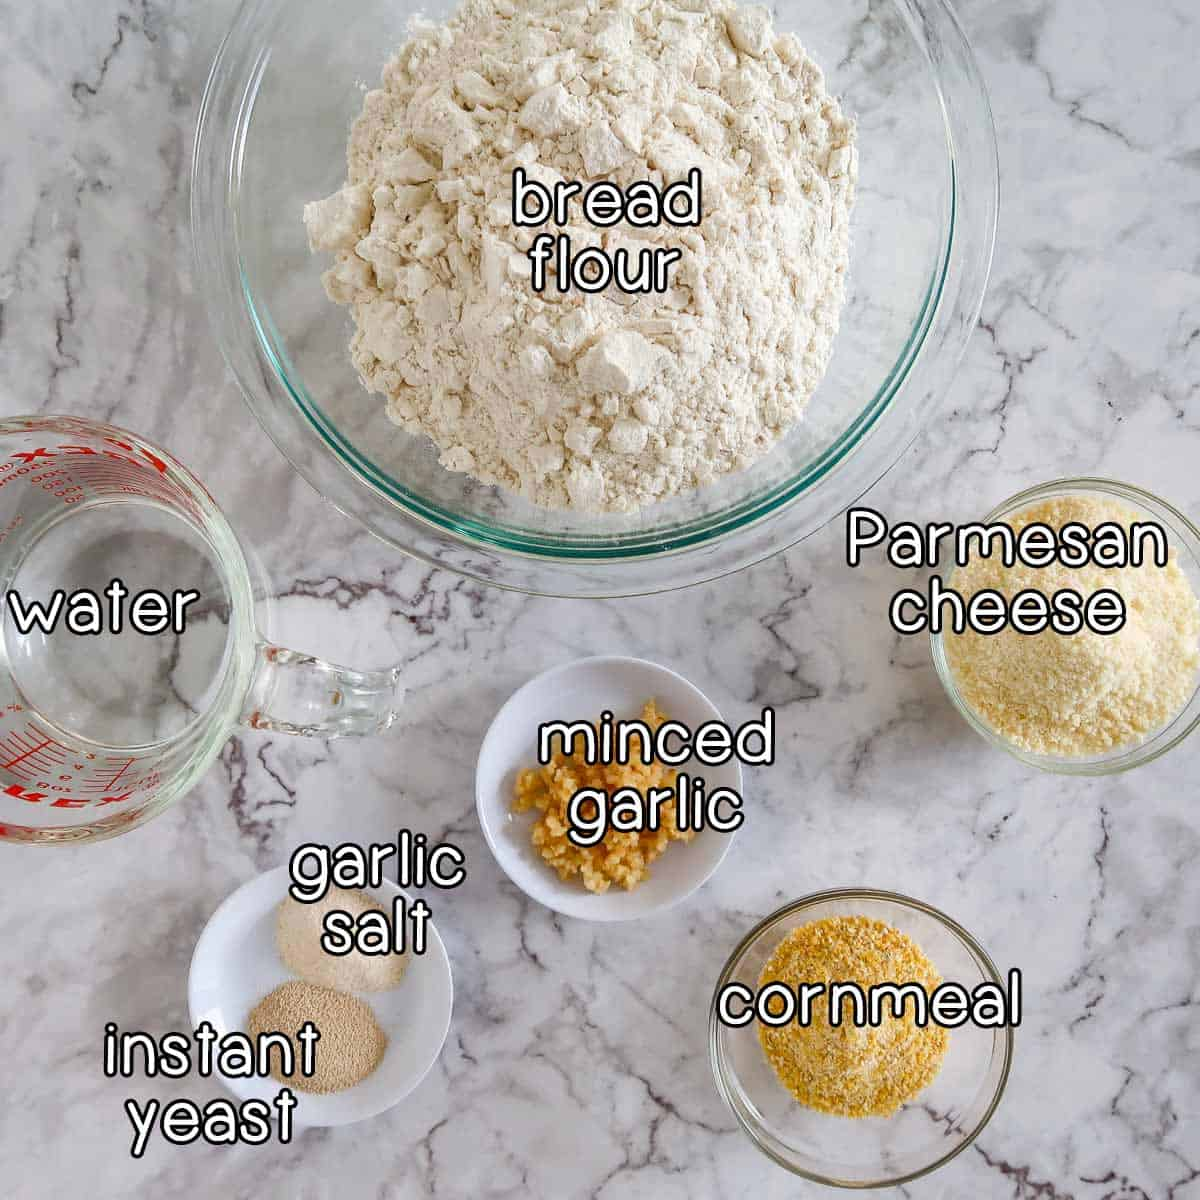 Overhead shot of ingredients- bread flour, parmesan cheese, water, minced garlic, garlic salt, instant yeast, and cornmeal.